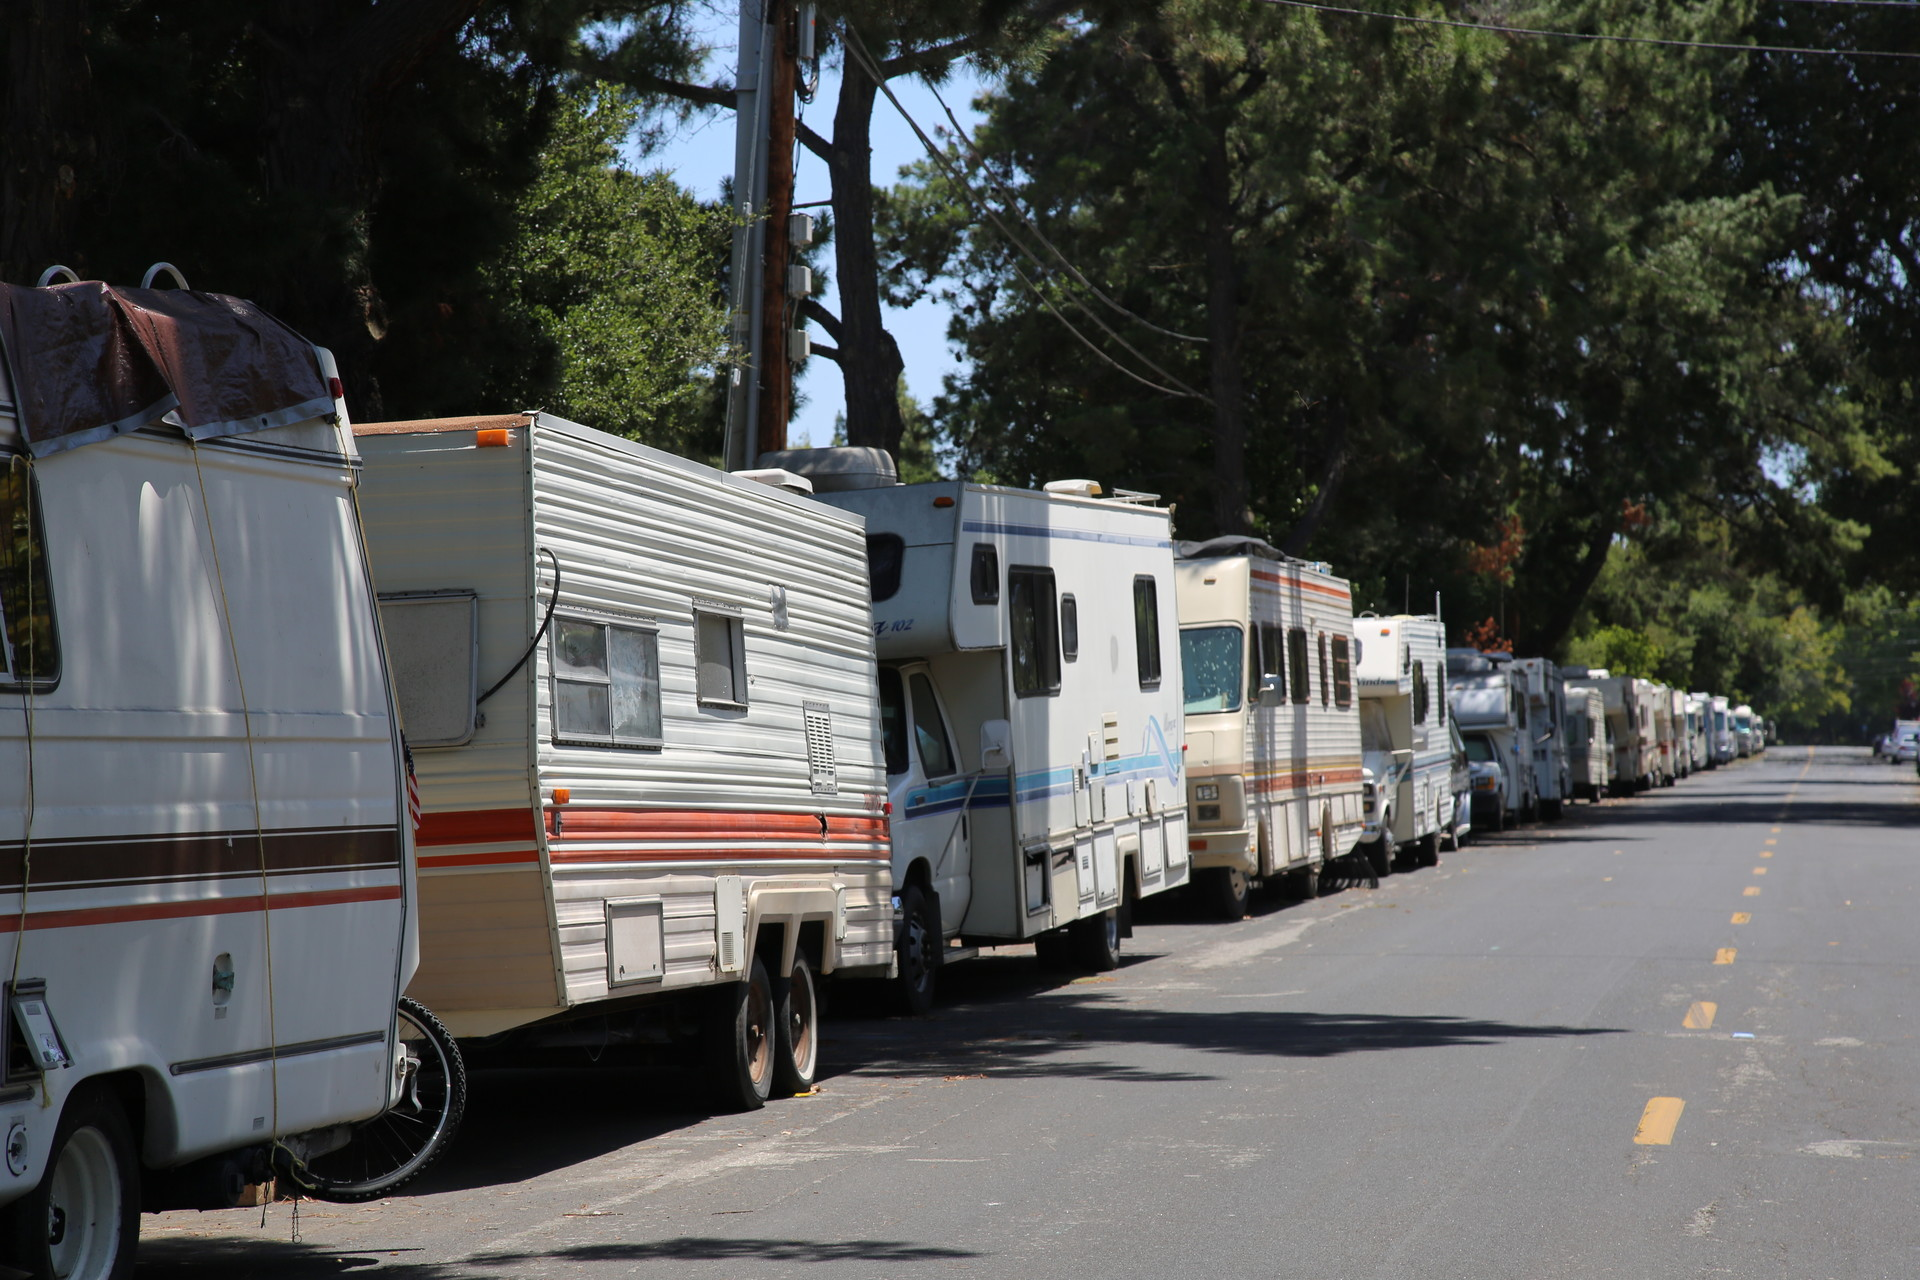 After Mountain View Approves RV Ban, Housing Advocates Vow to Fight it at Ballot Box